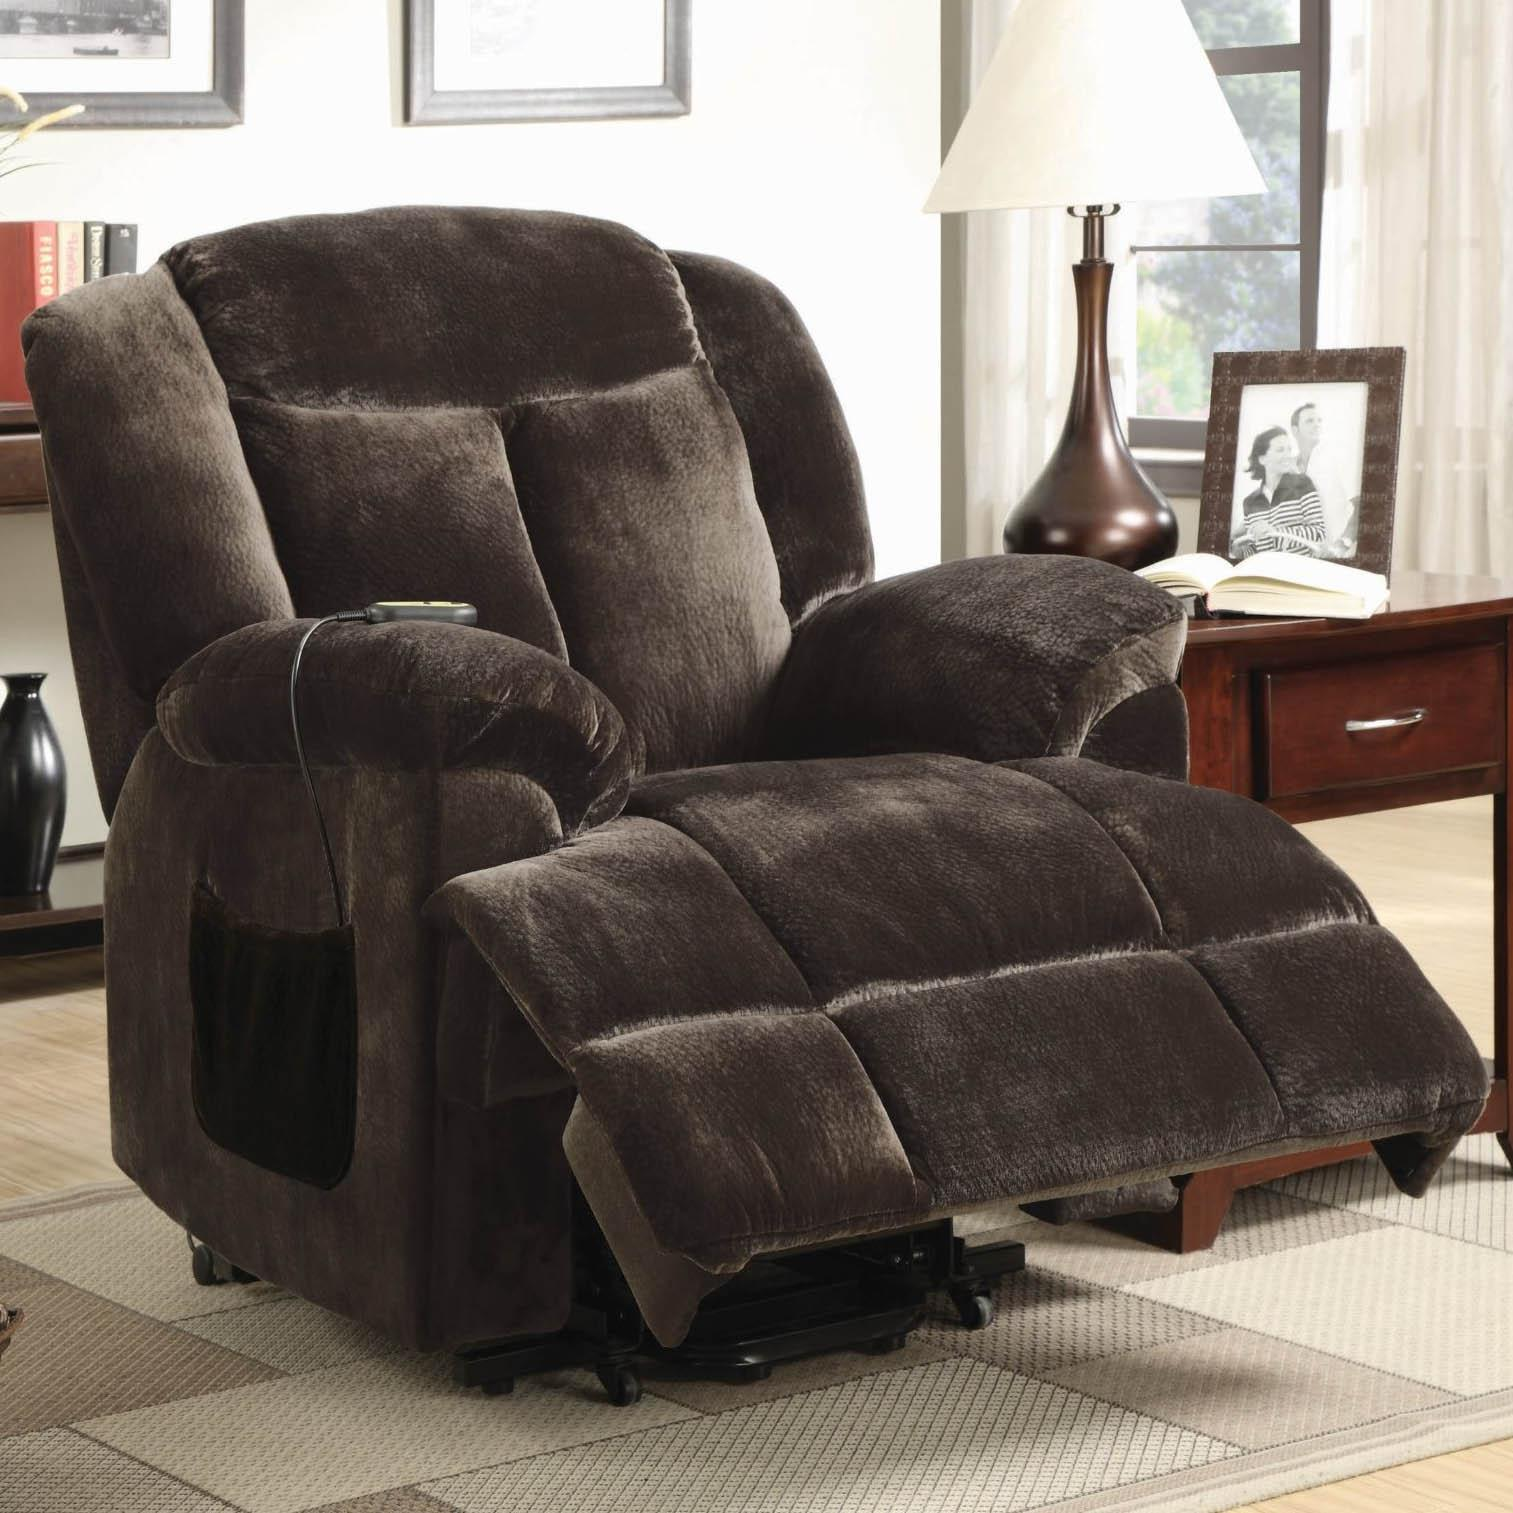 Coaster Recliners Power Lift Recliner - Item Number: 600173